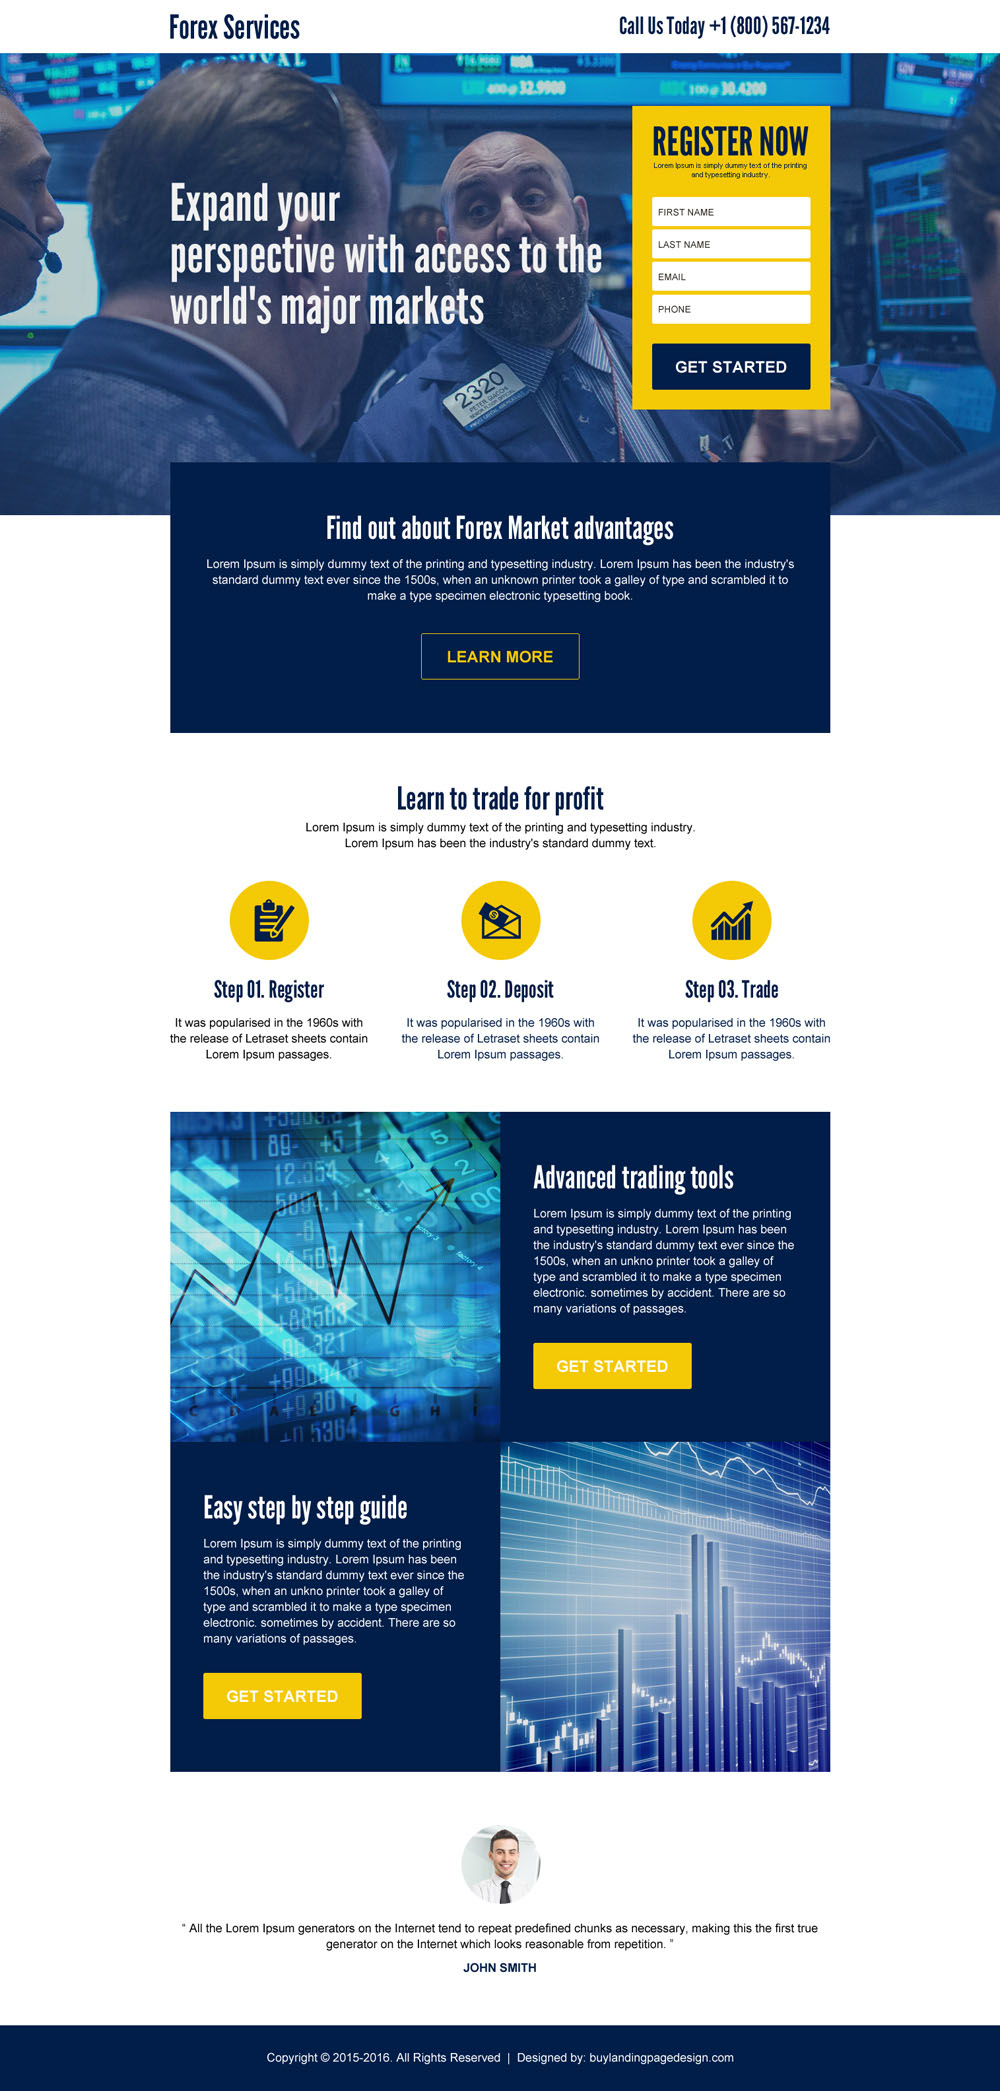 forex-market-access-sign-up-lead-gen-converting-landing-page-design-011